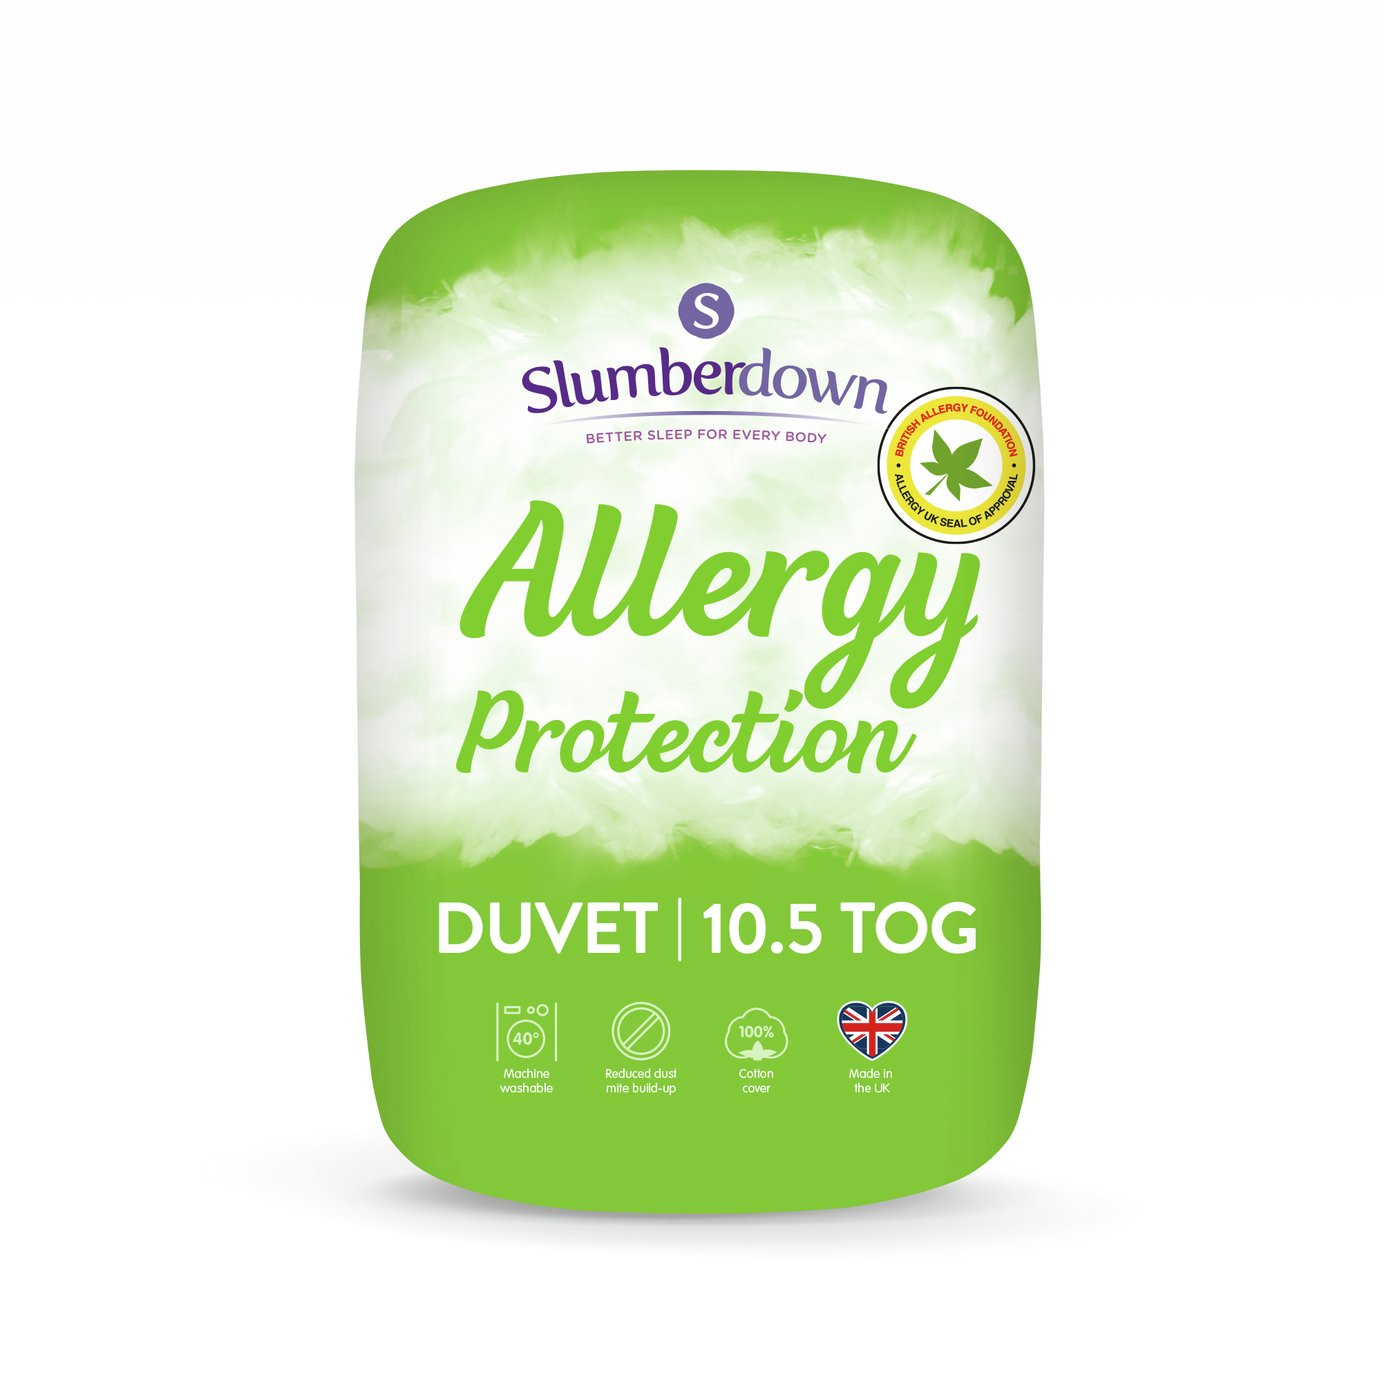 Slumbedown Allergy Protection 10.5 Tog Duvet - Single